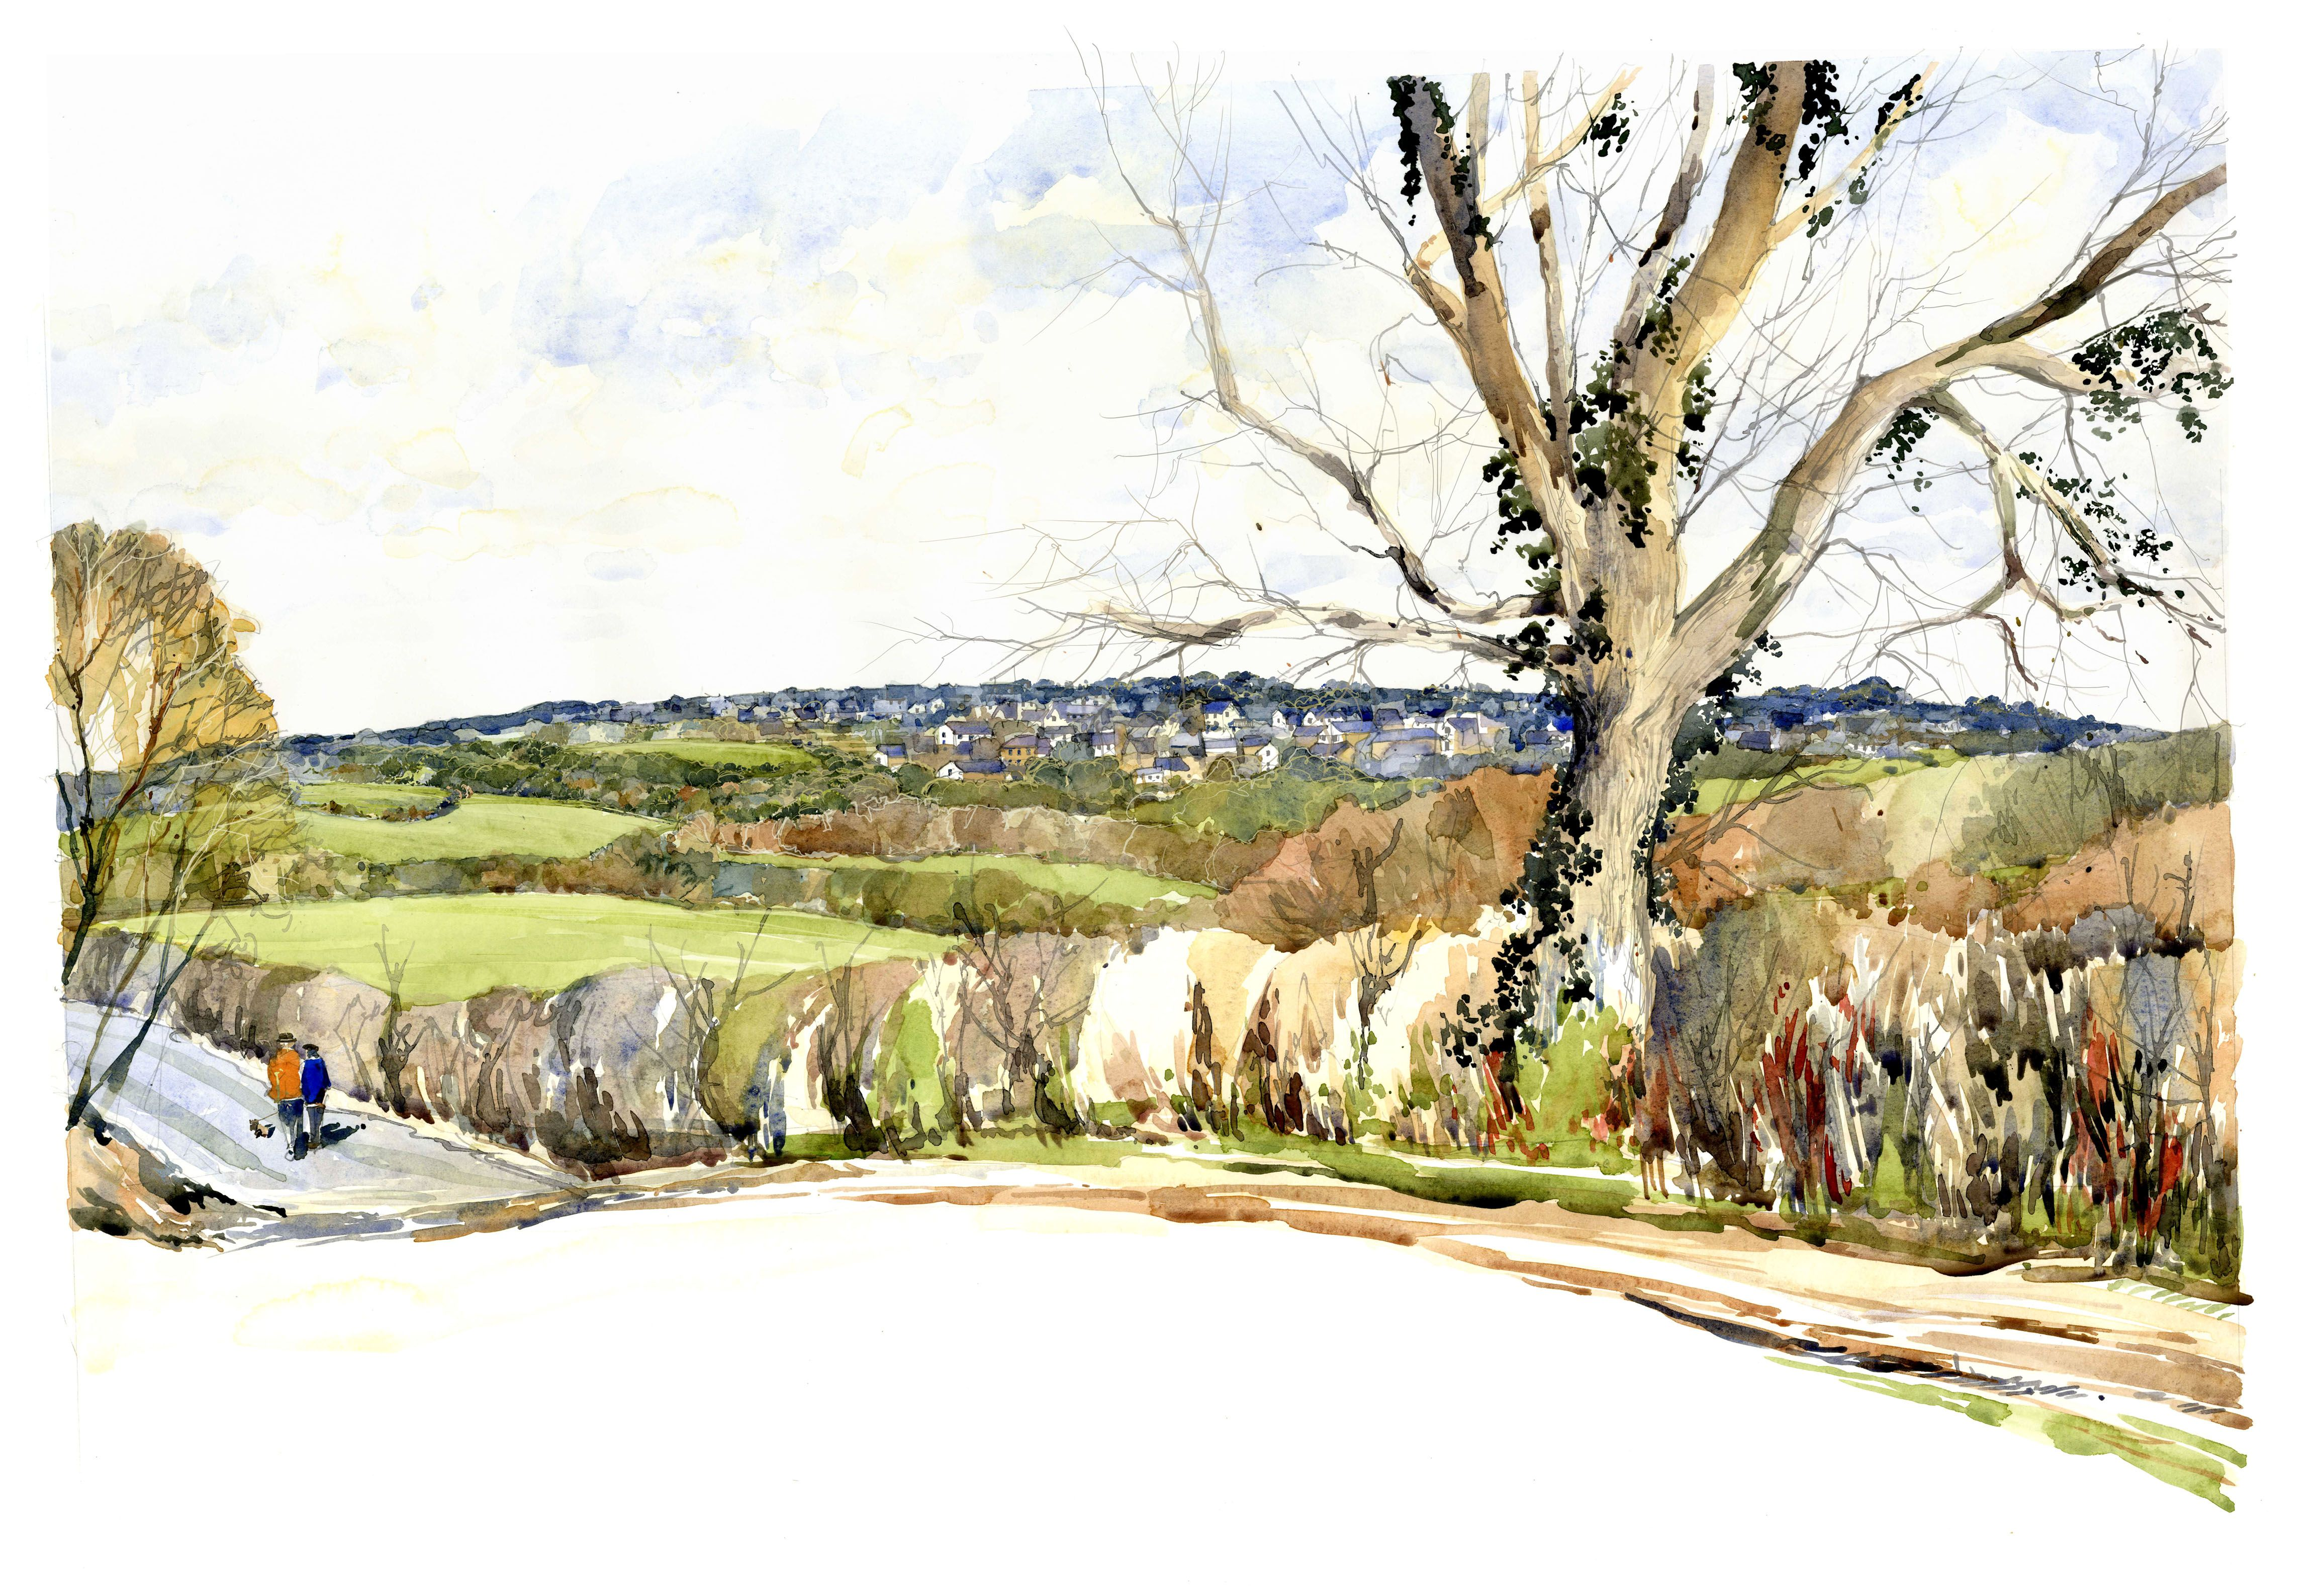 Watercolour View of Proposed Urban Extension, SW England www.nickhirst.co.uk